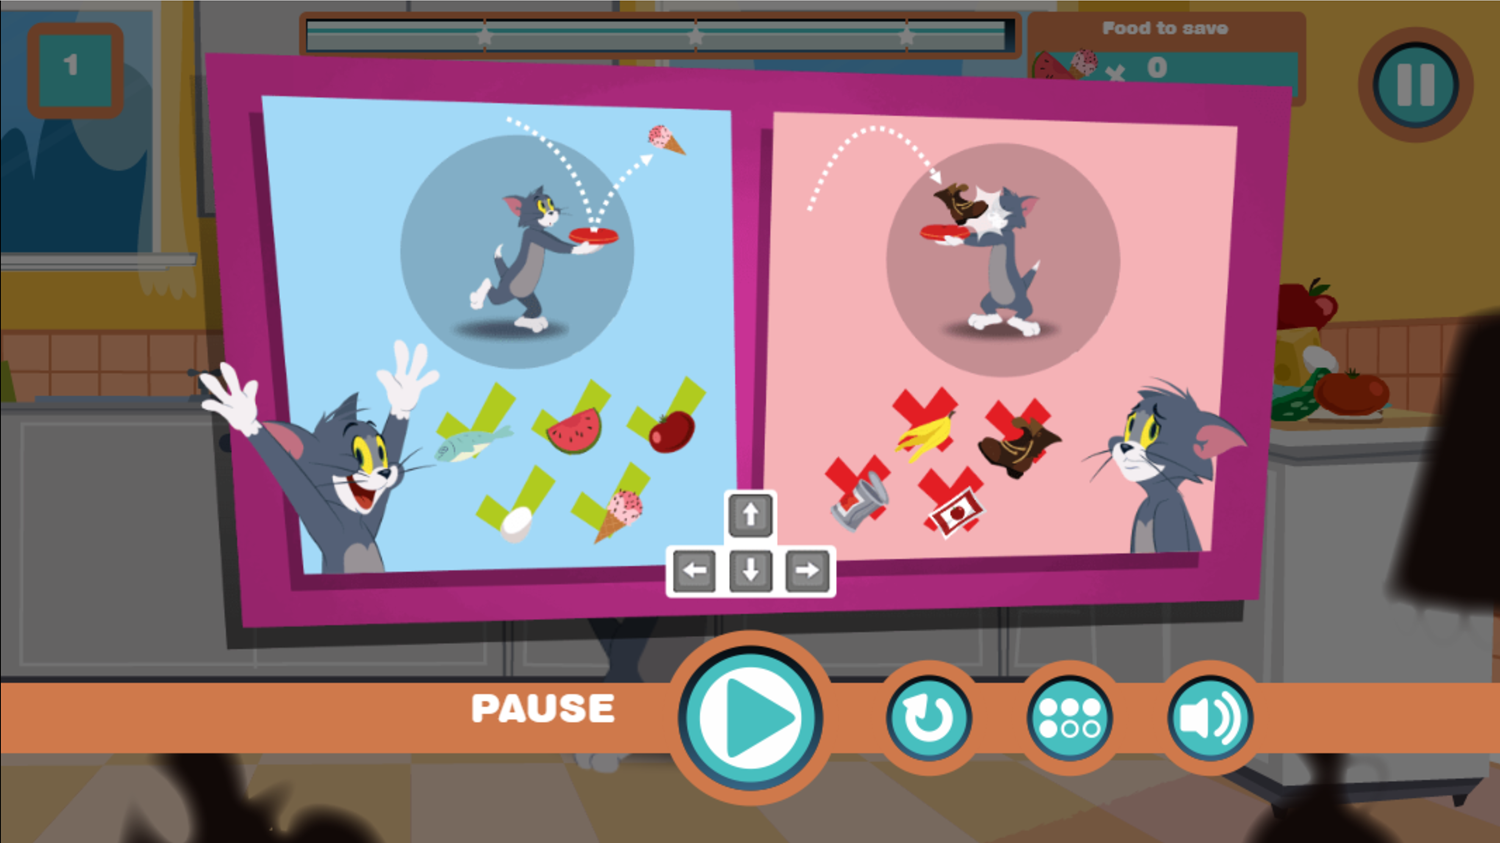 Tom and Jerry Don't Make a Mess Gameplay Instructions Screenshot.